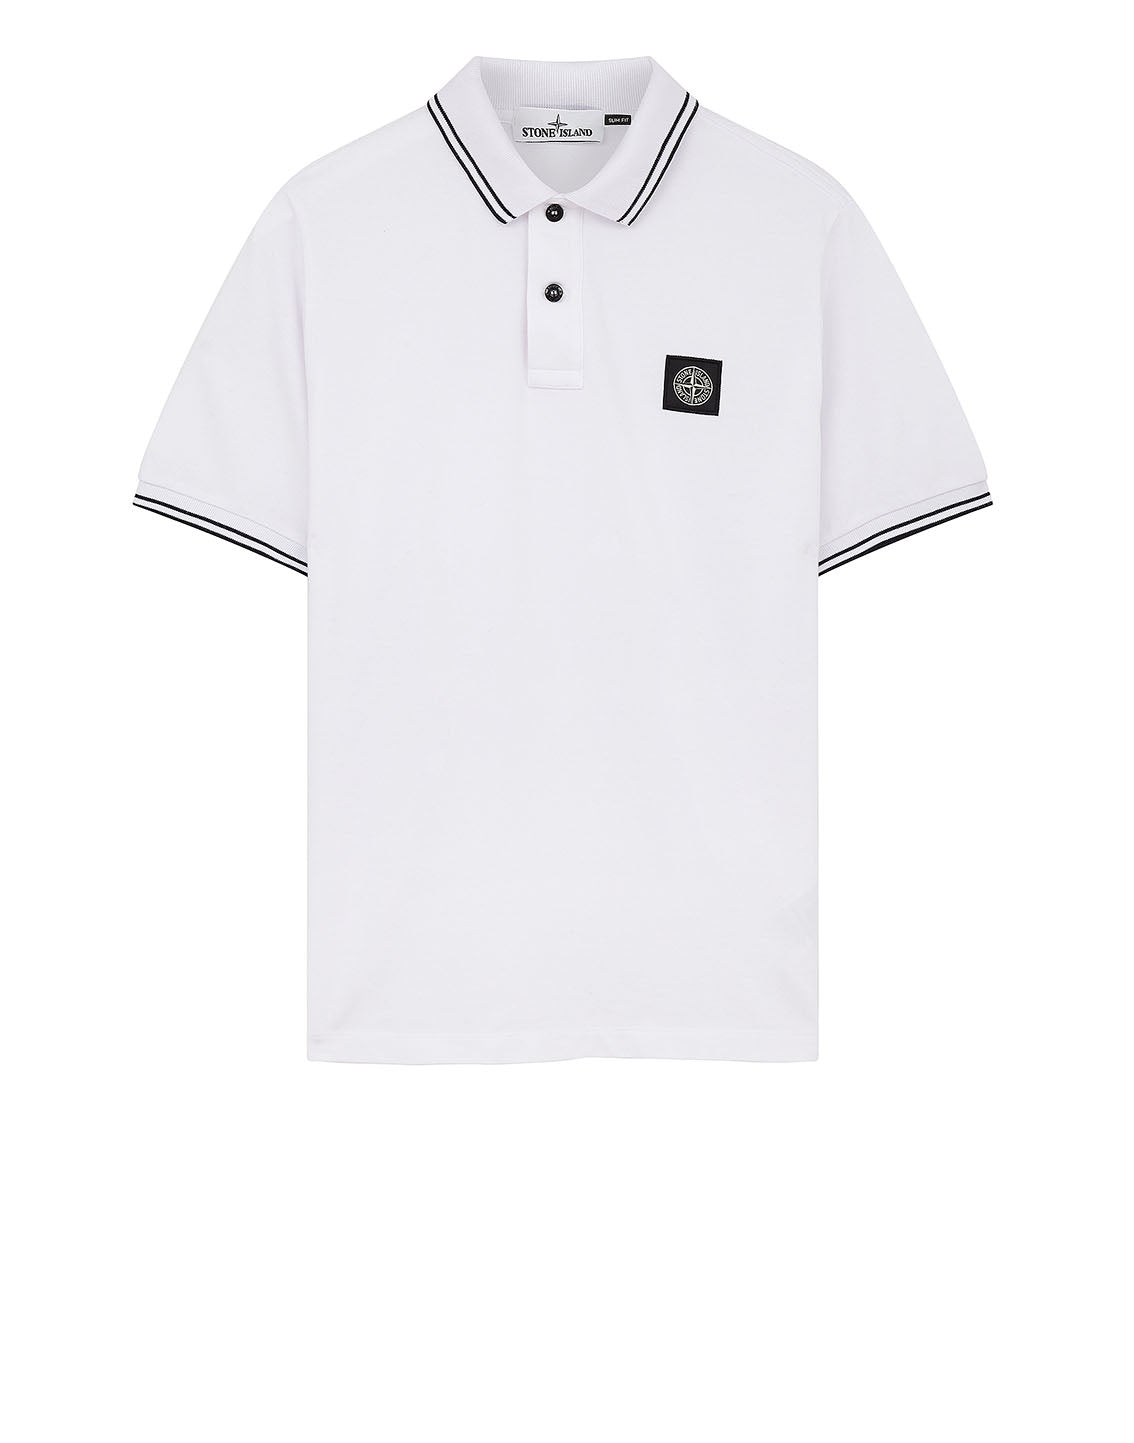 22S18 Polo Shirt in White